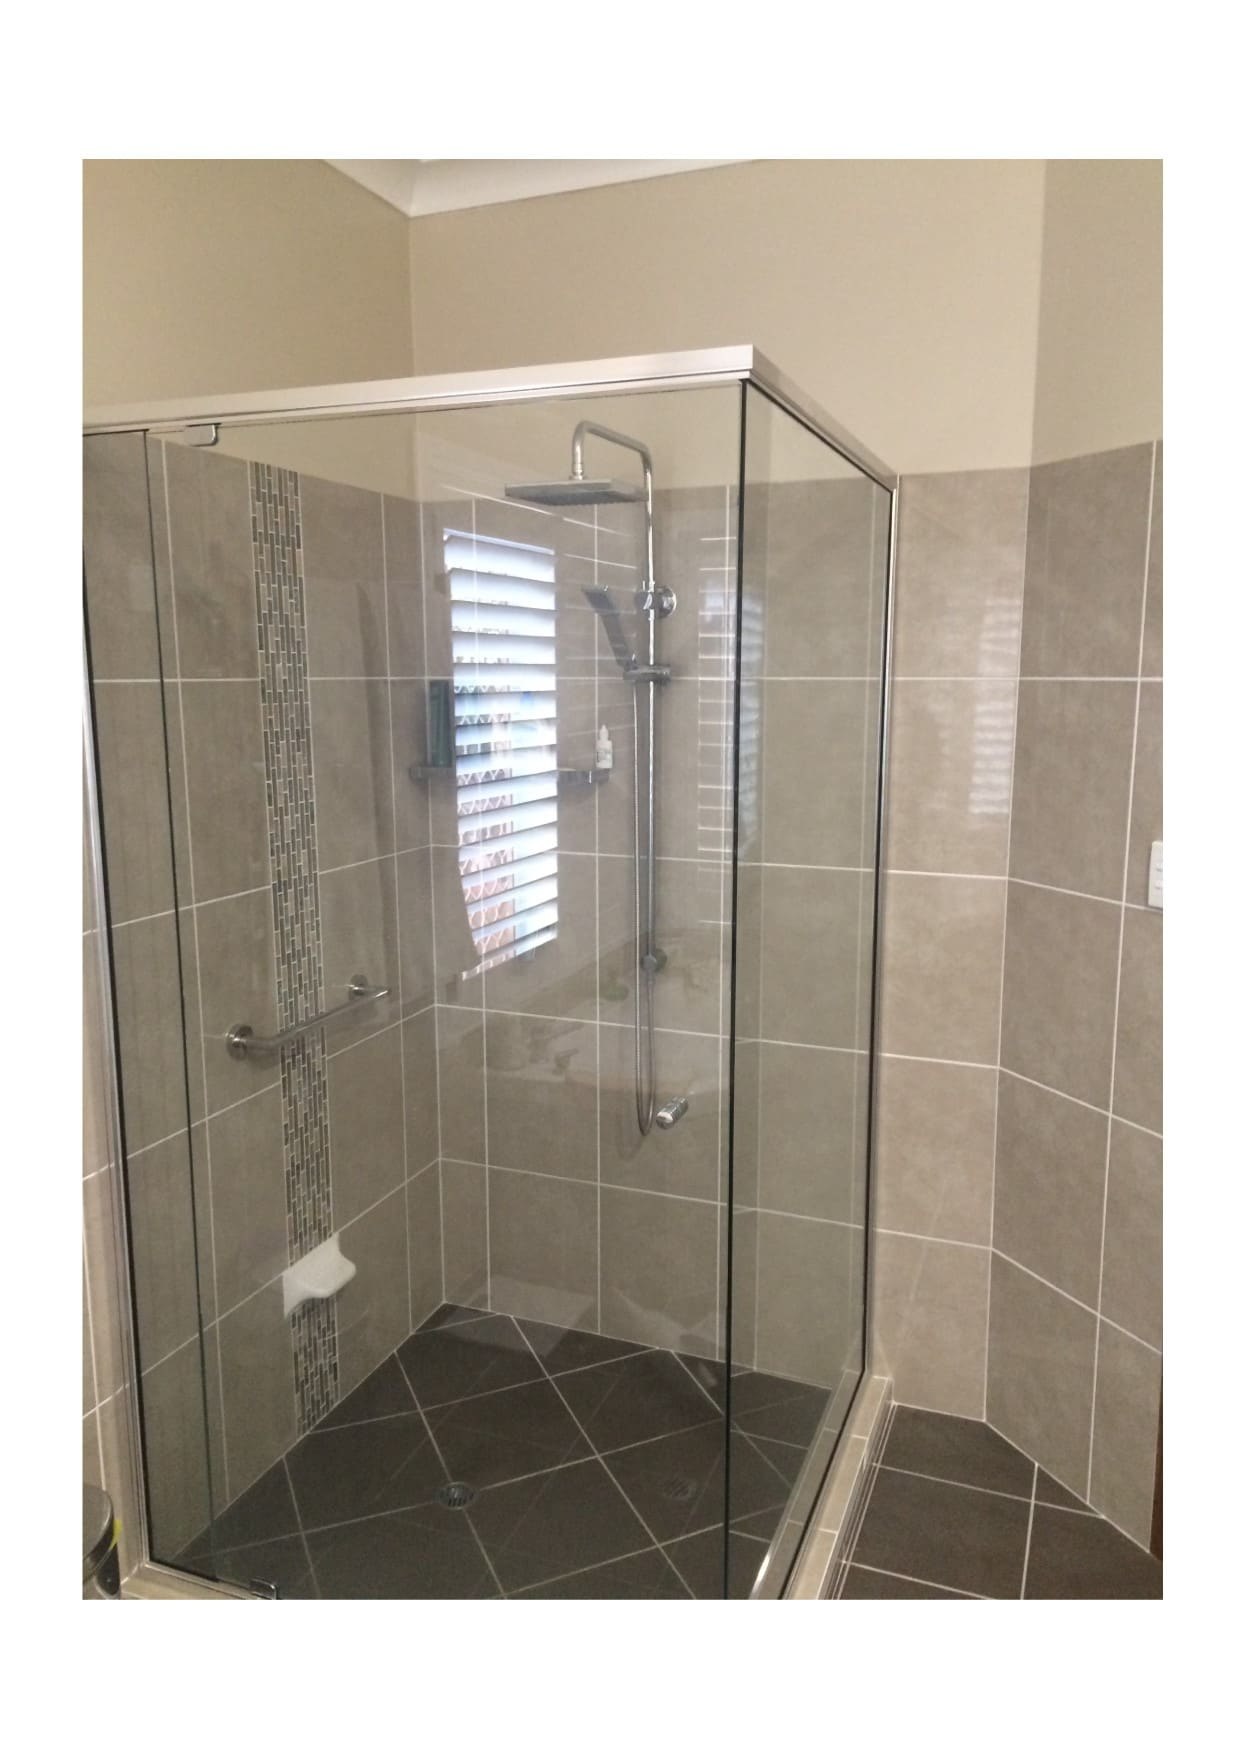 Toowoomba Bathroom Renovations - Bathroom Renovations & Designs ...